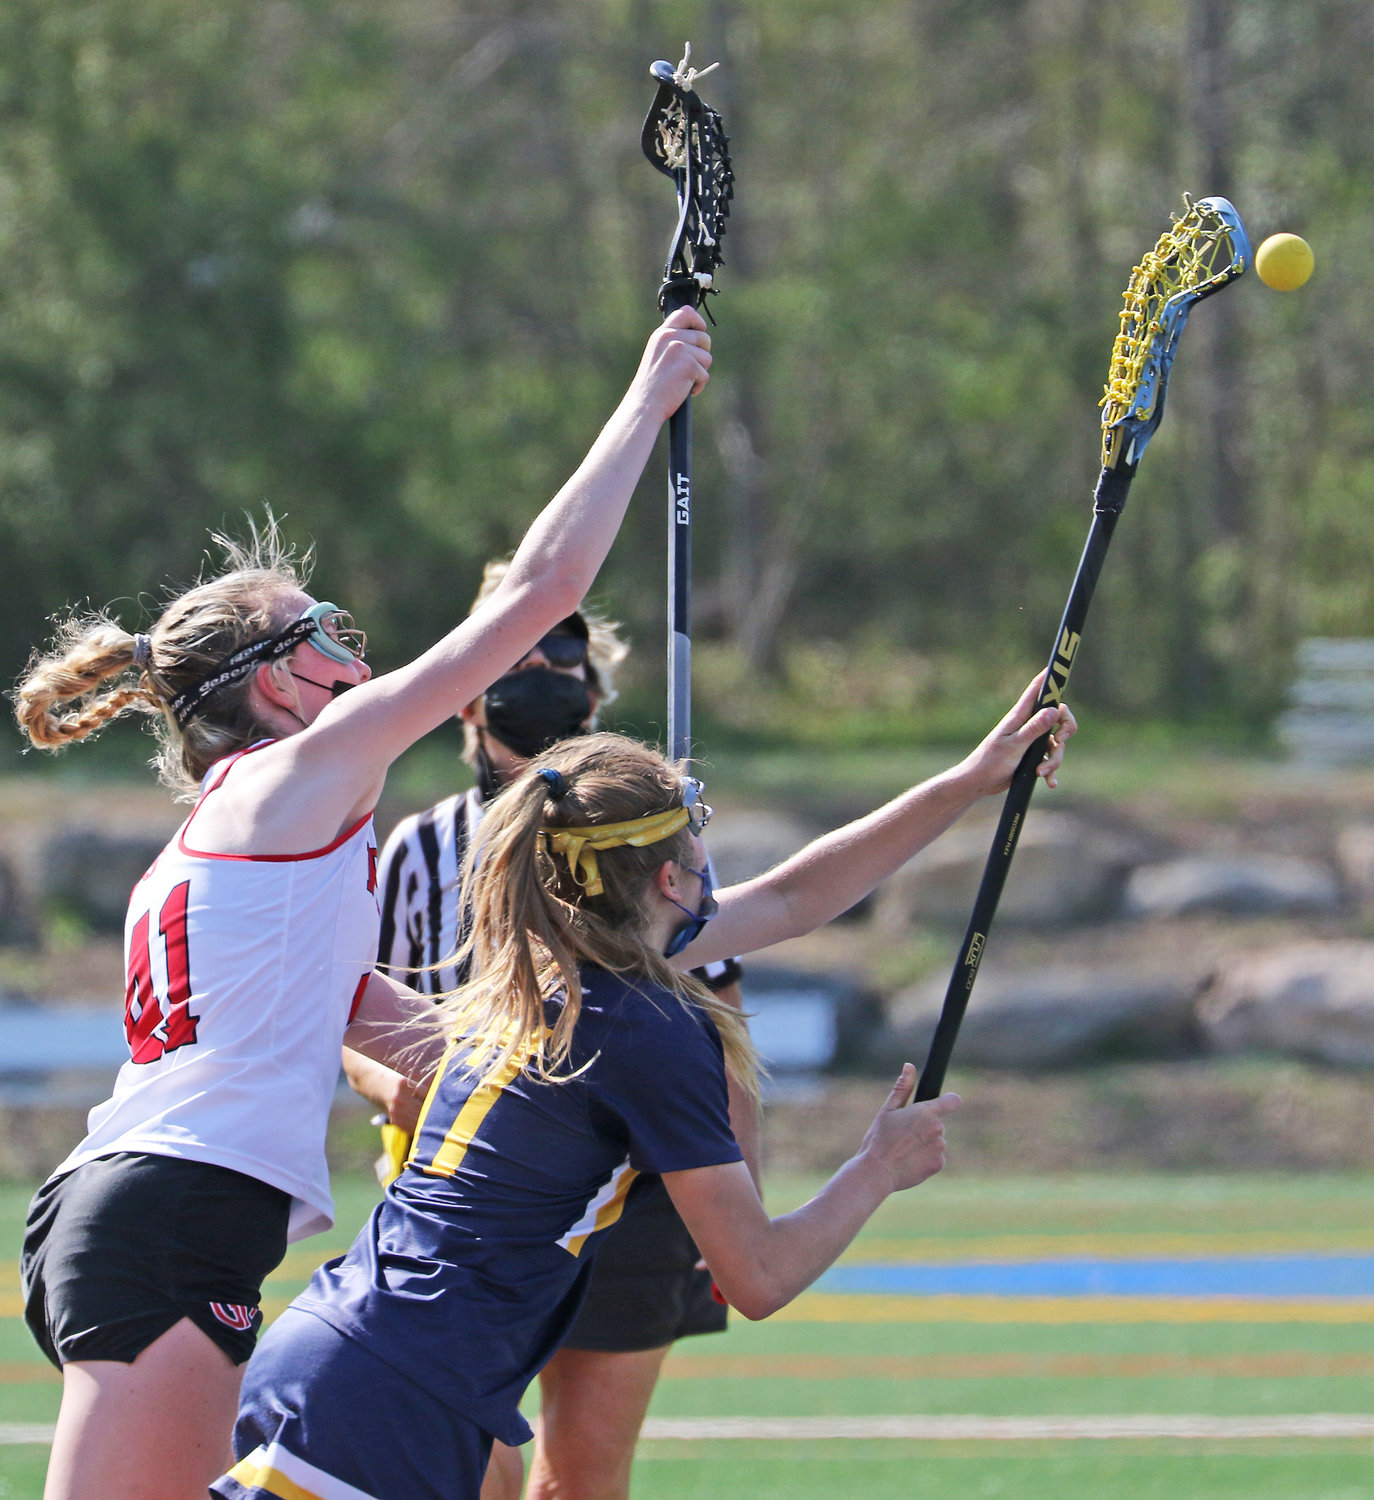 Penn Charter junior Charlotte Hodgson (right) wins a draw against GA freshman Emma Goodwin. Hodgson has verbally committed to Harvard University.  (Photo by Tom Utescher)